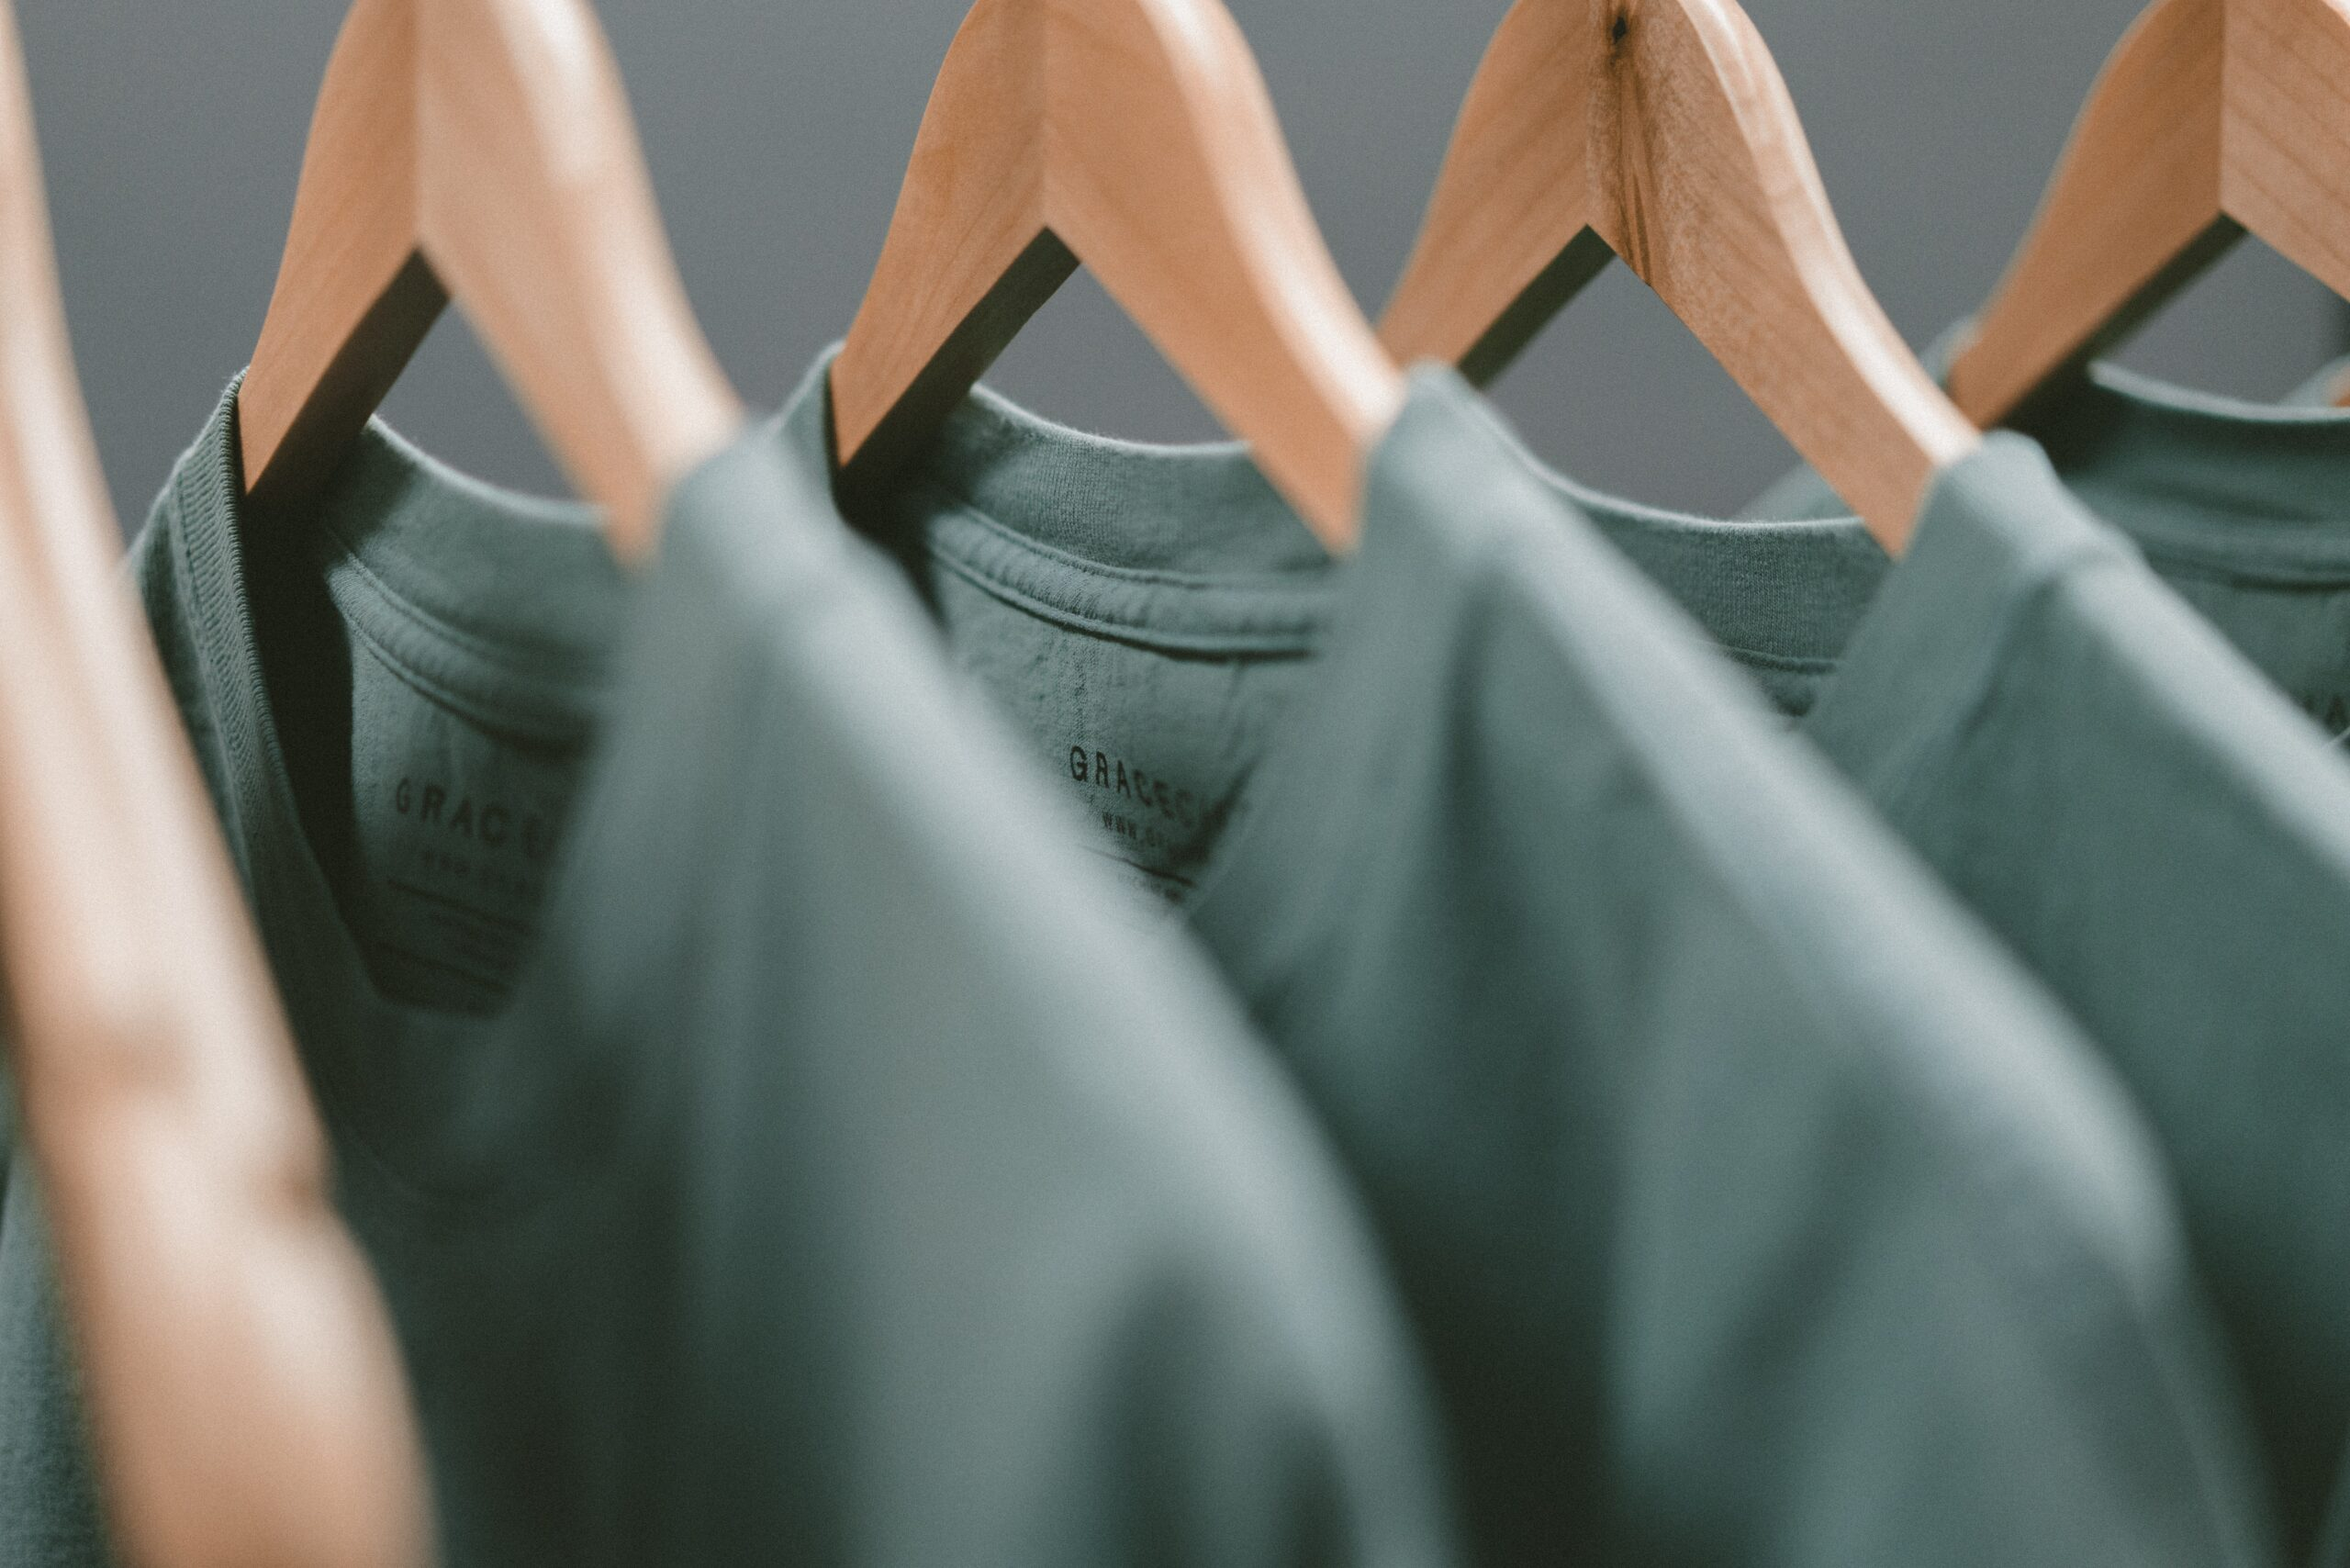 Bamboo Clothing In Australia- A Sustainable Clothing Choice